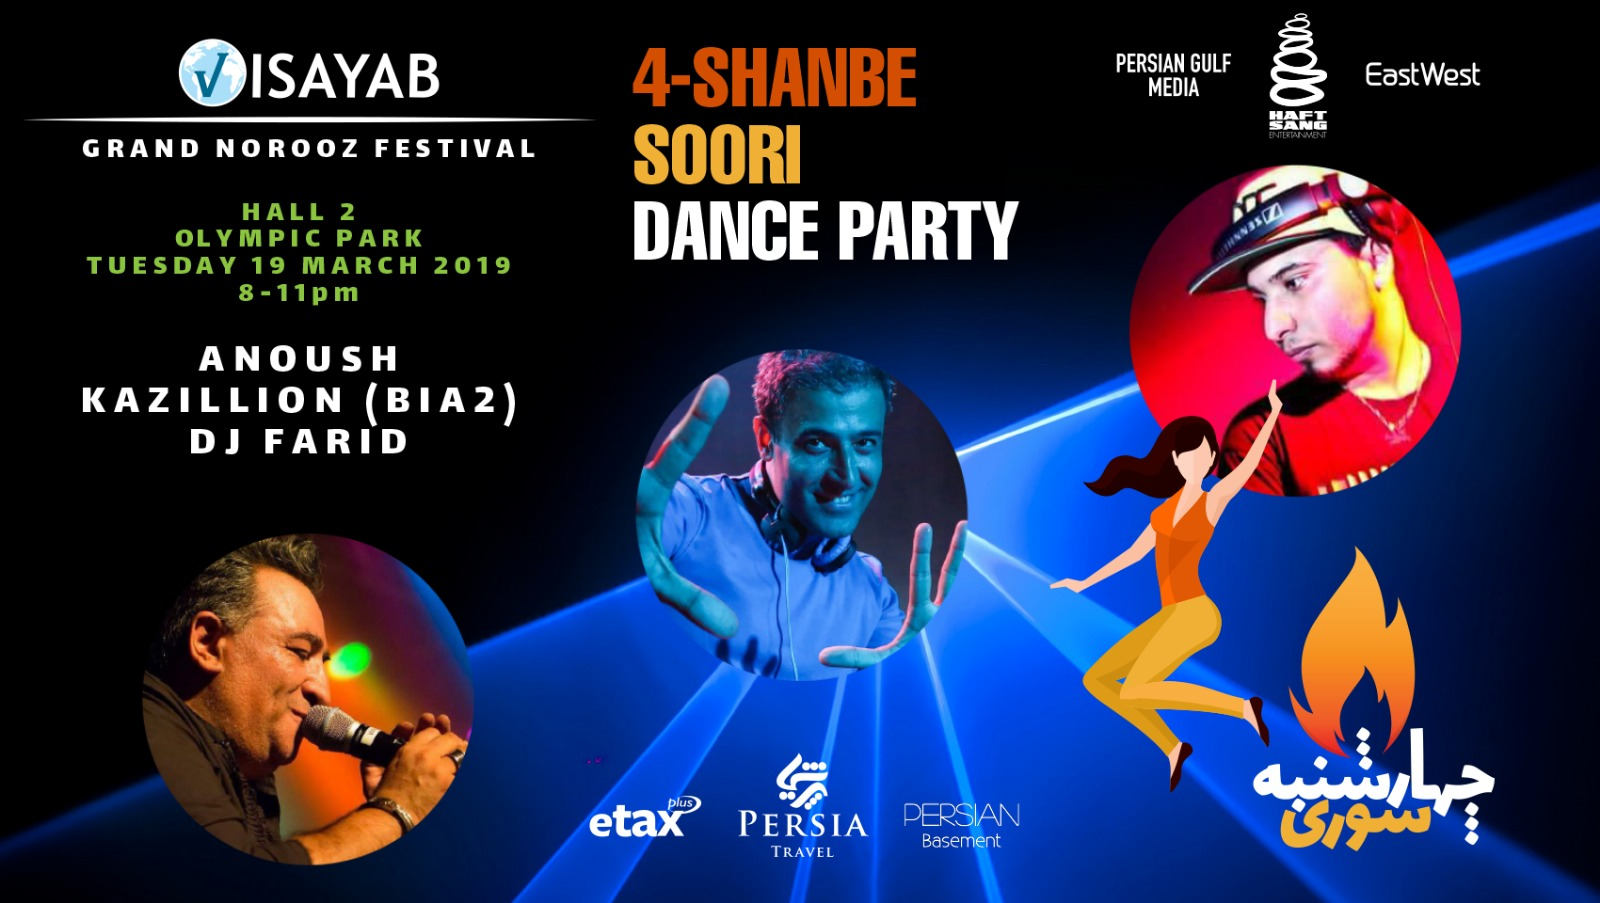 Tickets for DANCE PARTY-4 Shanbe soori Norooz Sydney in Sydney Olympic park from Ticketbooth